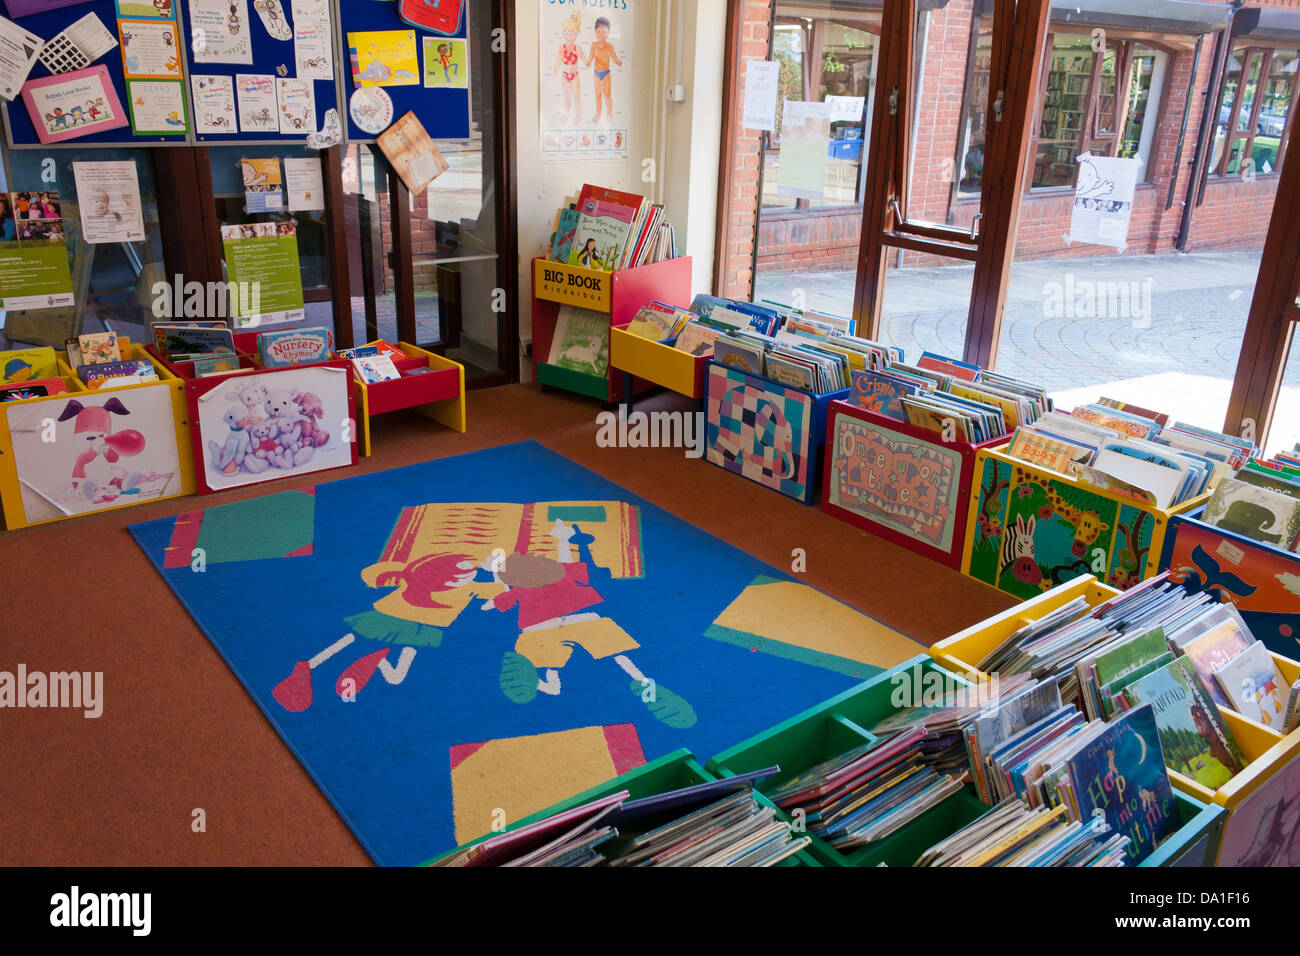 Section of a UK Public Library for children's books ...